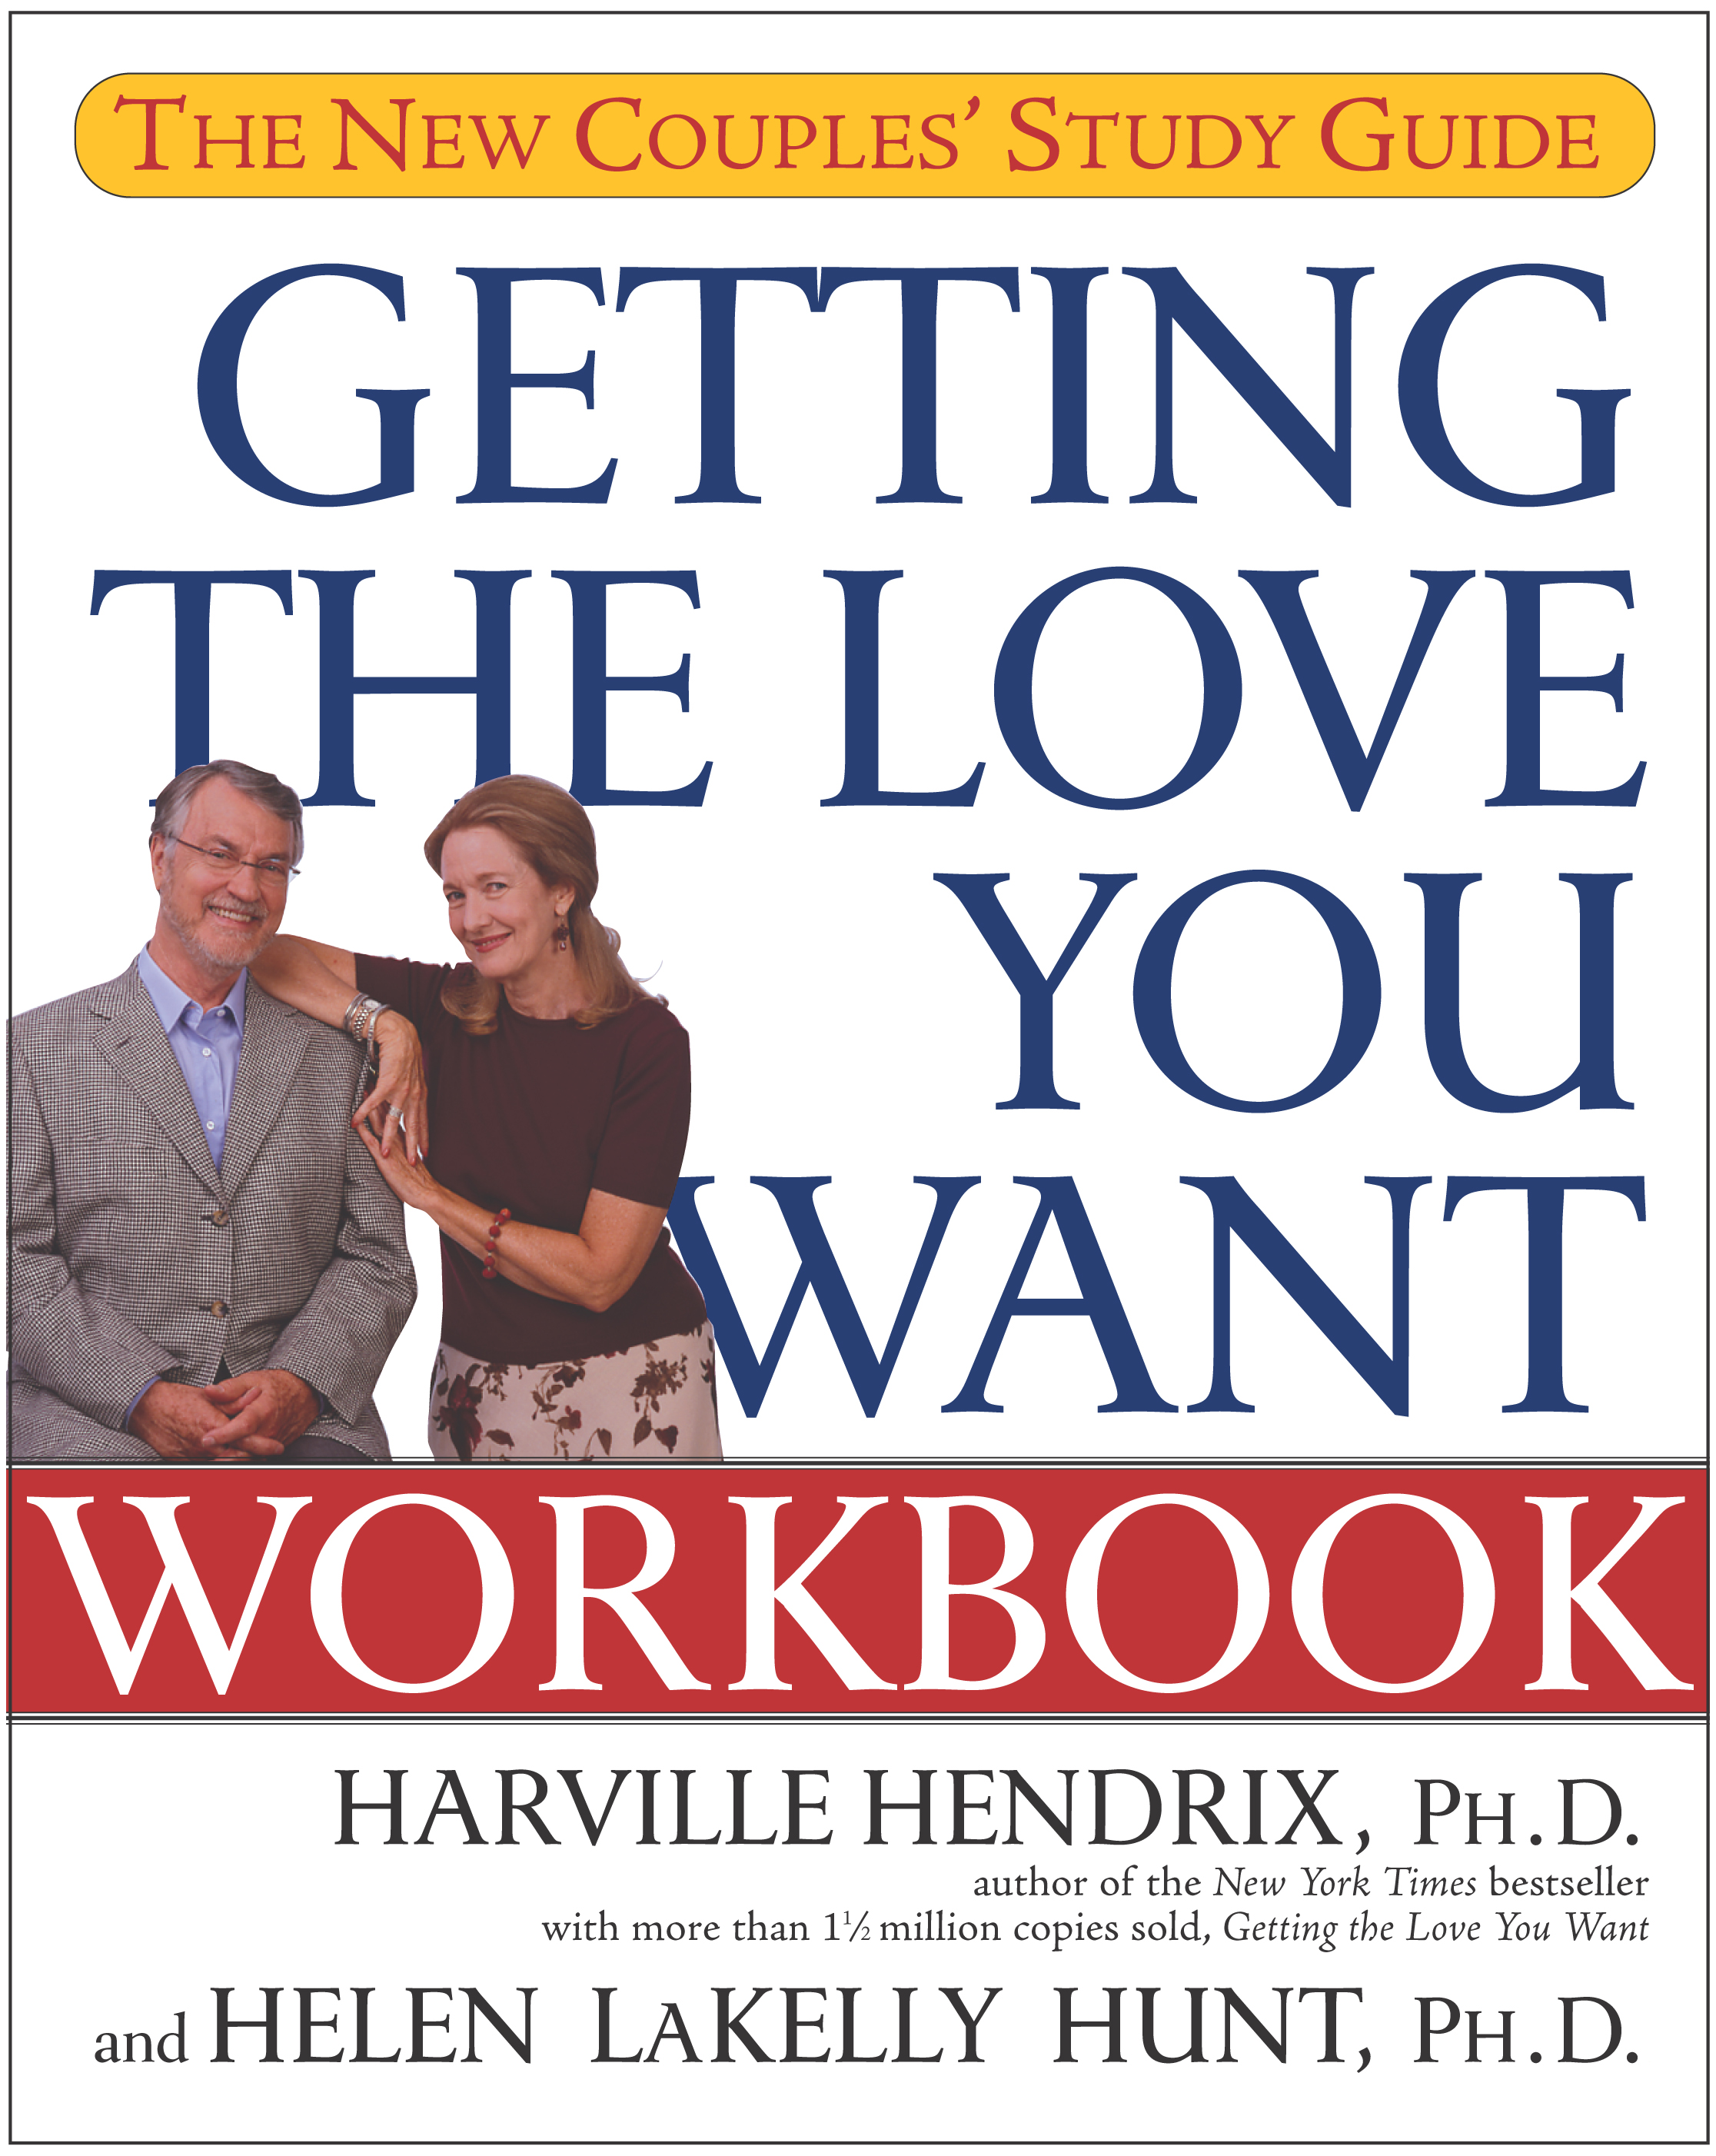 Harville hendrix books